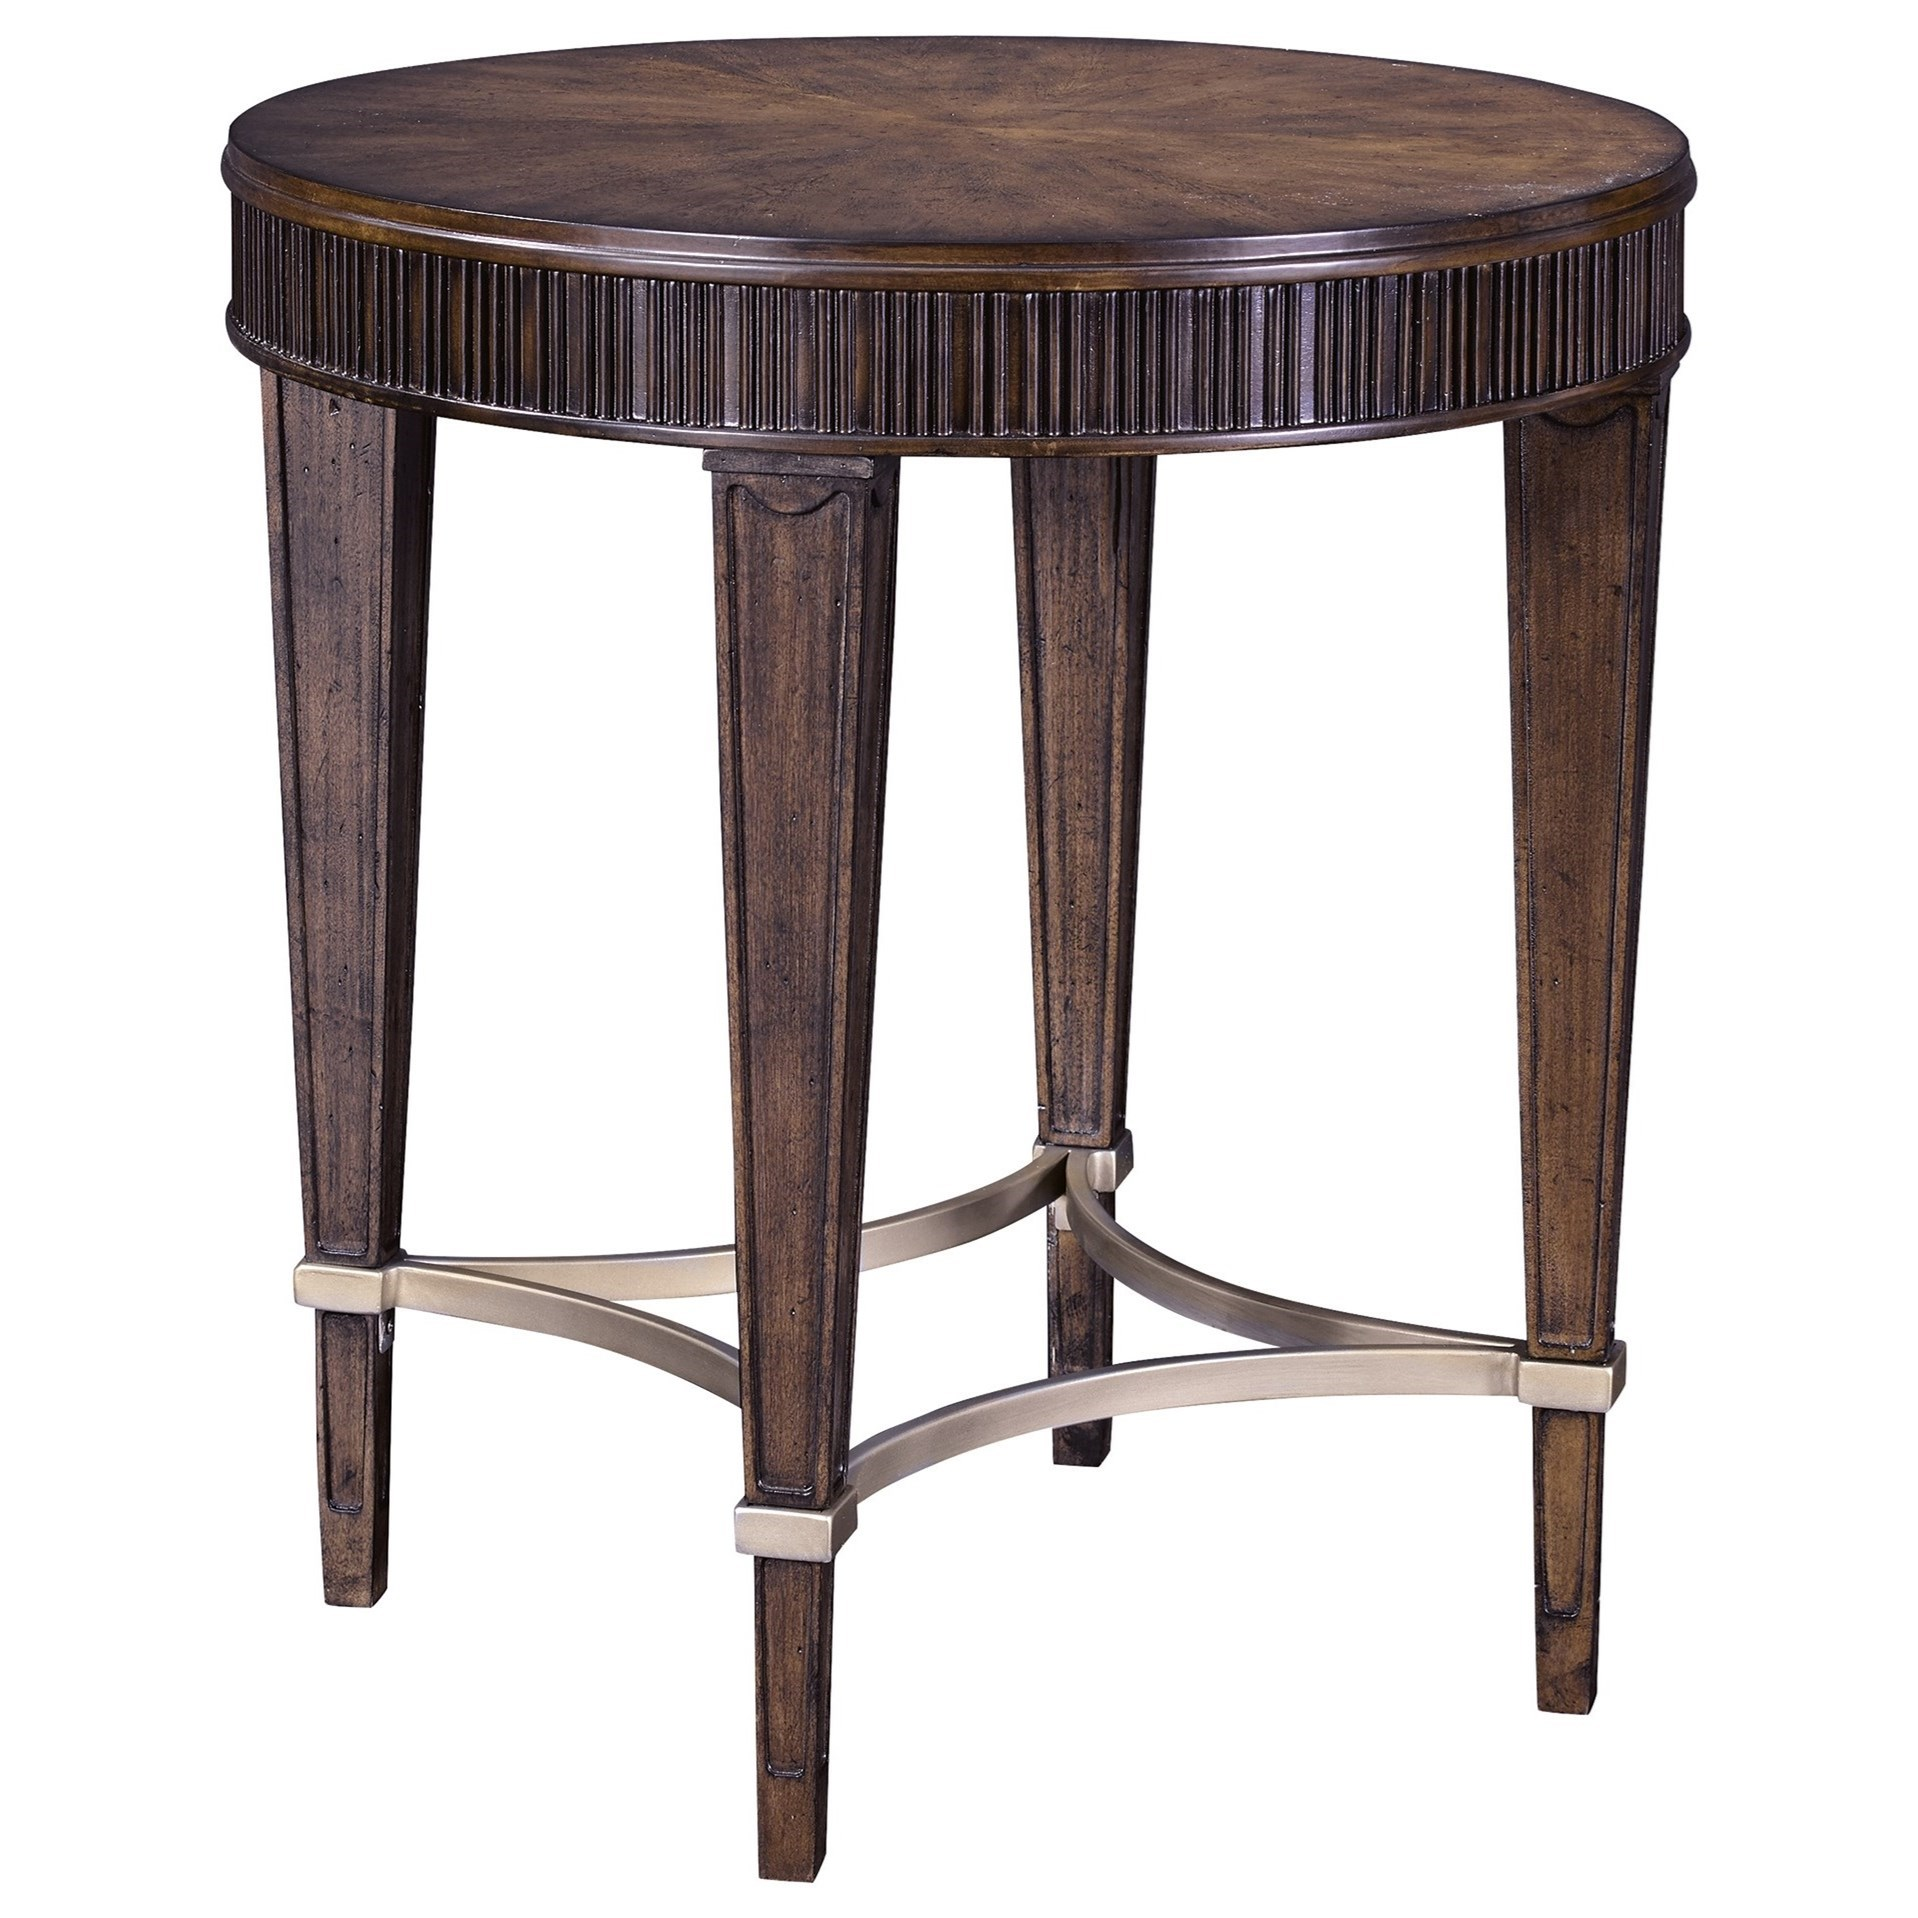 Broyhill Furniture Cashmera Round Lamp Table - Item Number: 4860-000